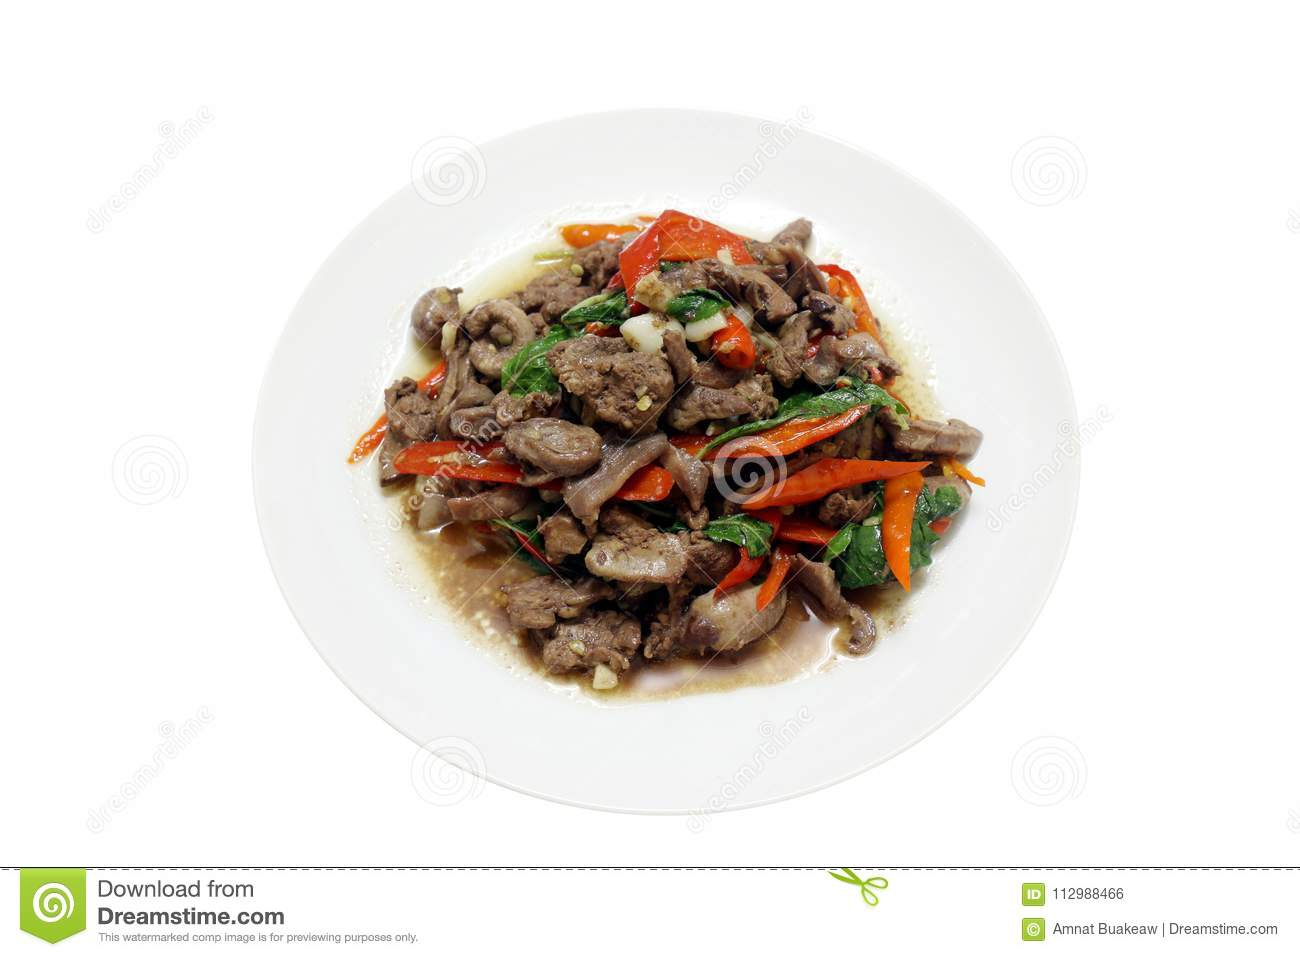 Chicken innards Fried in oyster sauce, spicy food, chili food, Fried vegetable, Fried beef with oyster sauce & Basil leaves on top